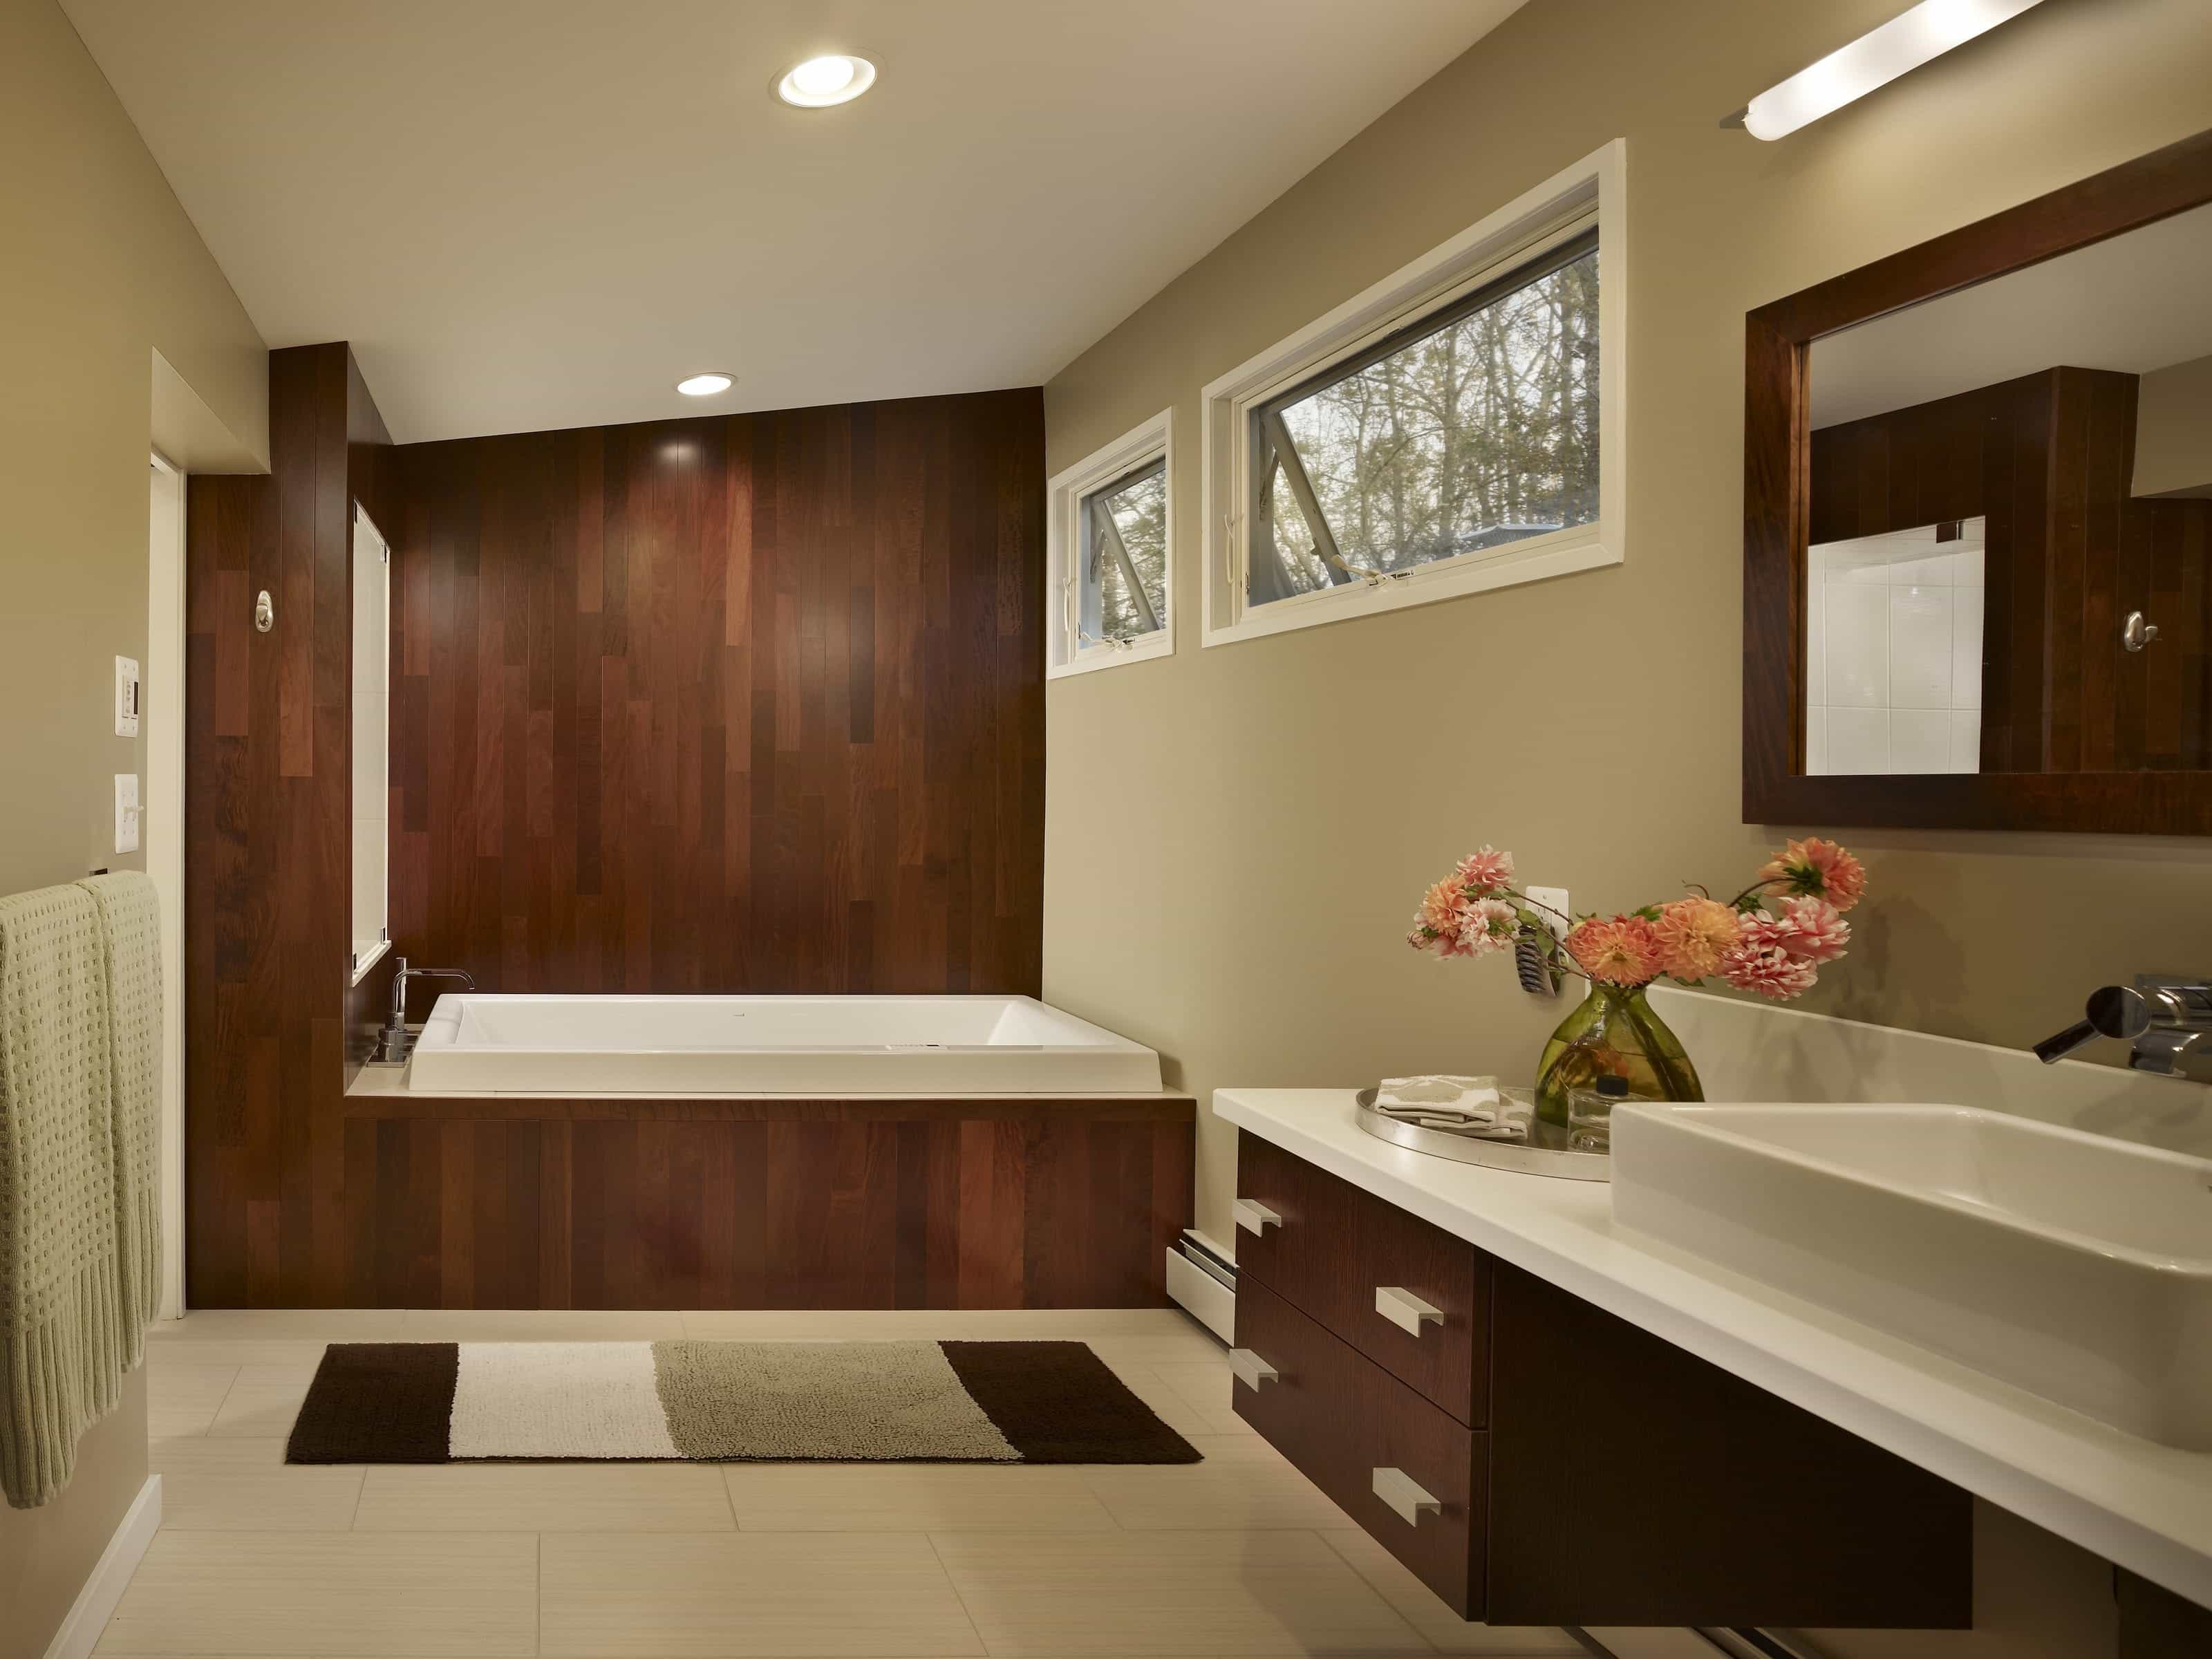 Relaxing Contemporary Spa Bathroom With Minimalist Rug (Image 11 of 11)